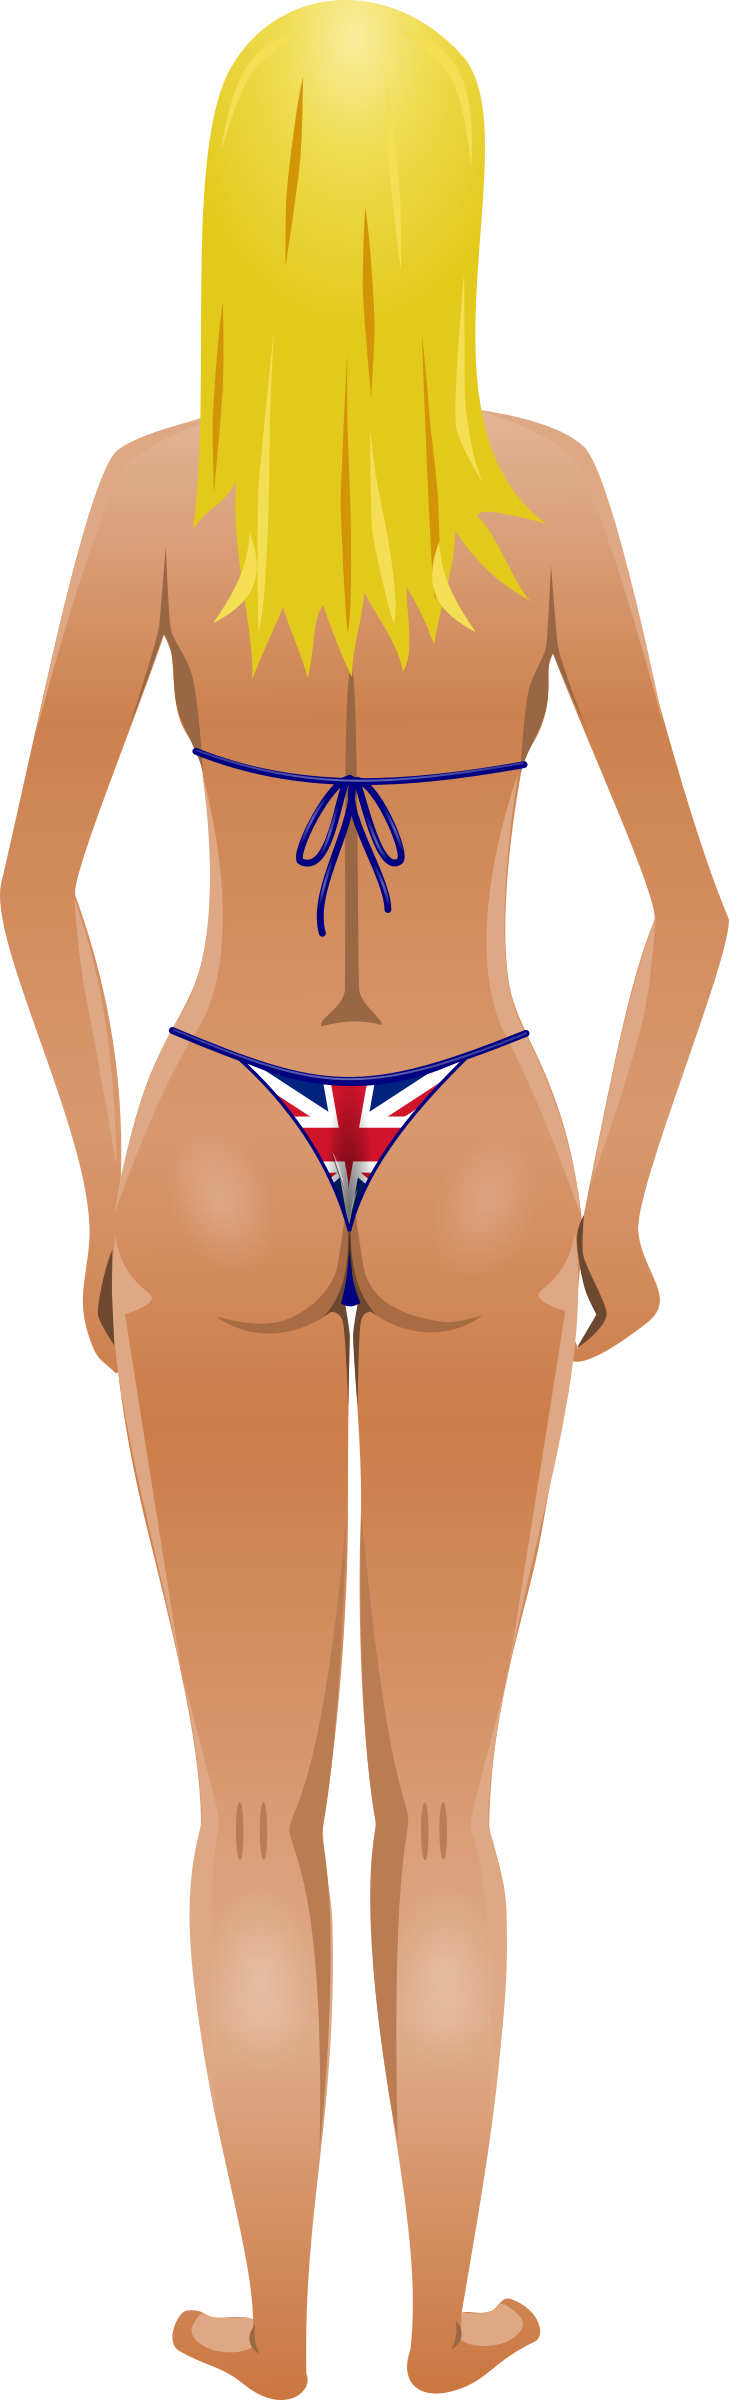 Young lady (light skin, flag bikini, blonde hair) by Firkin